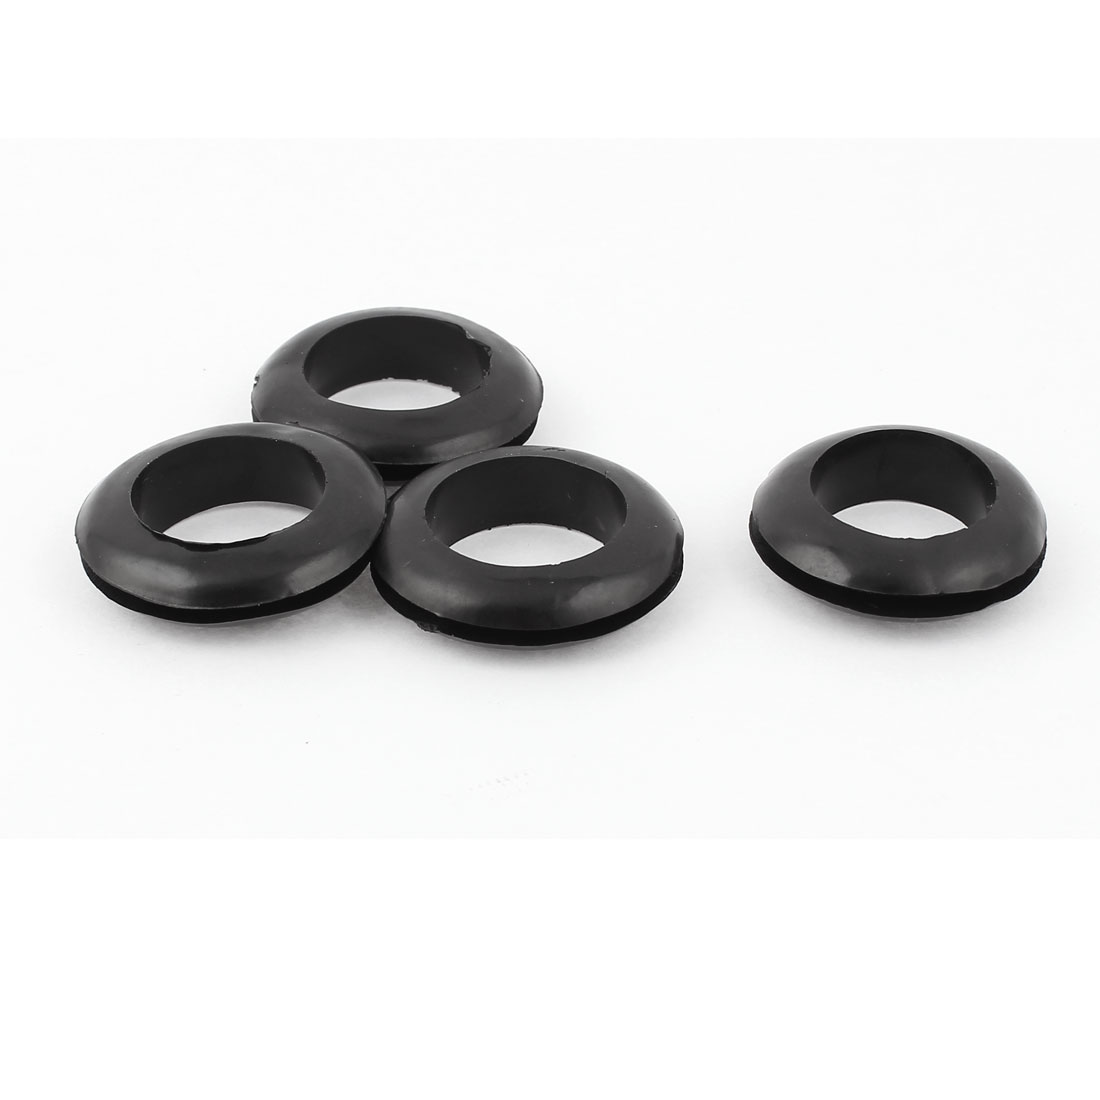 26mm Dia. Double Sides Rubber Wire Grommets Gasket Ring Cable Protector 4Pcs